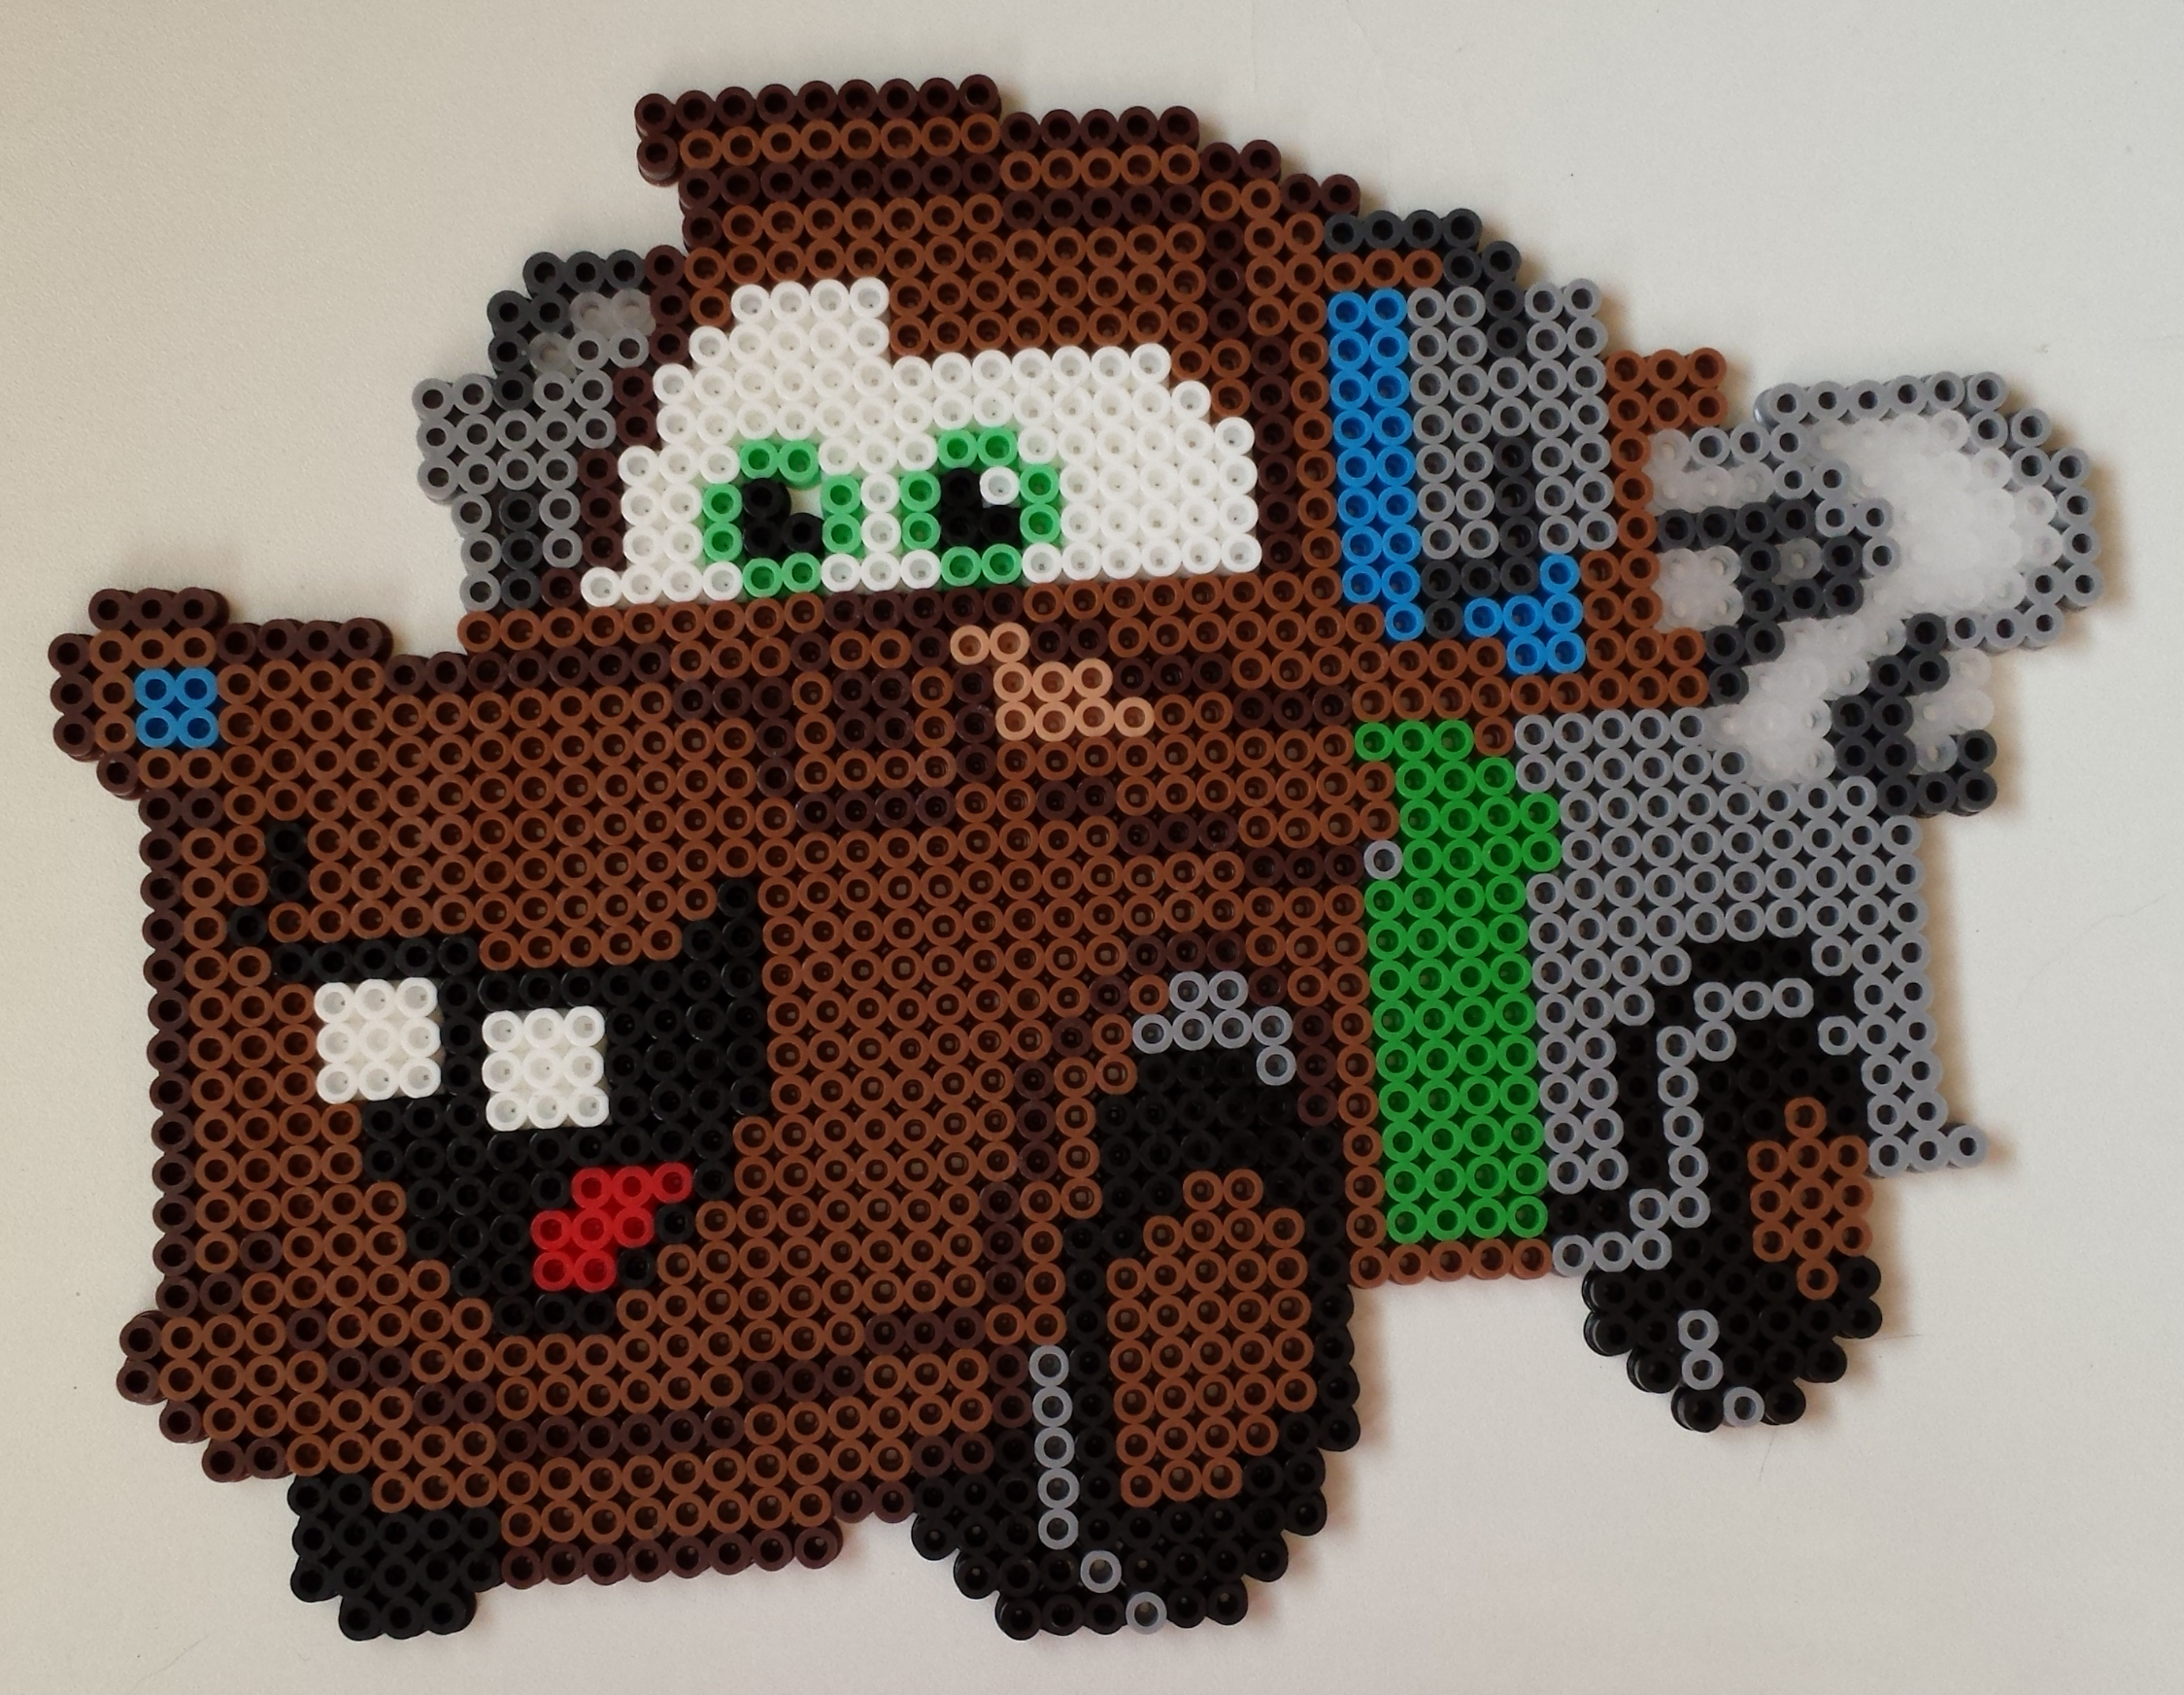 Mater from Cars done in perler beads.